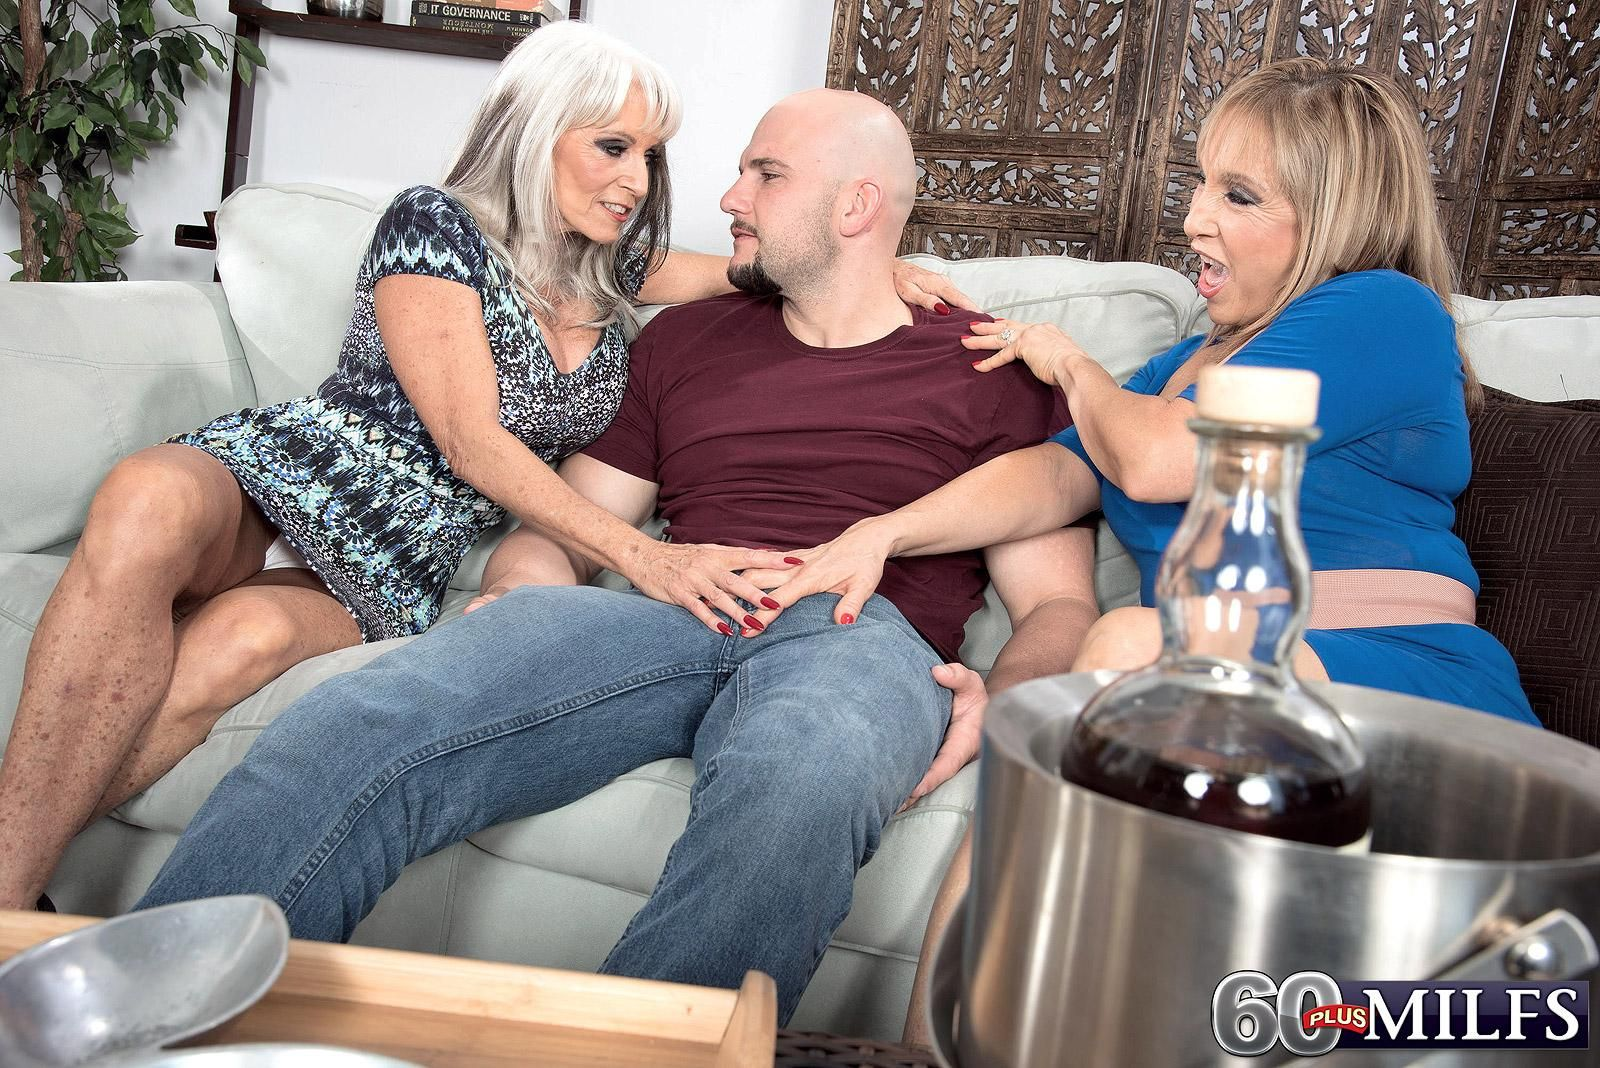 MILF Over 60 Sally D'Angelo and a hot GILF swap cum after giving a double BJ